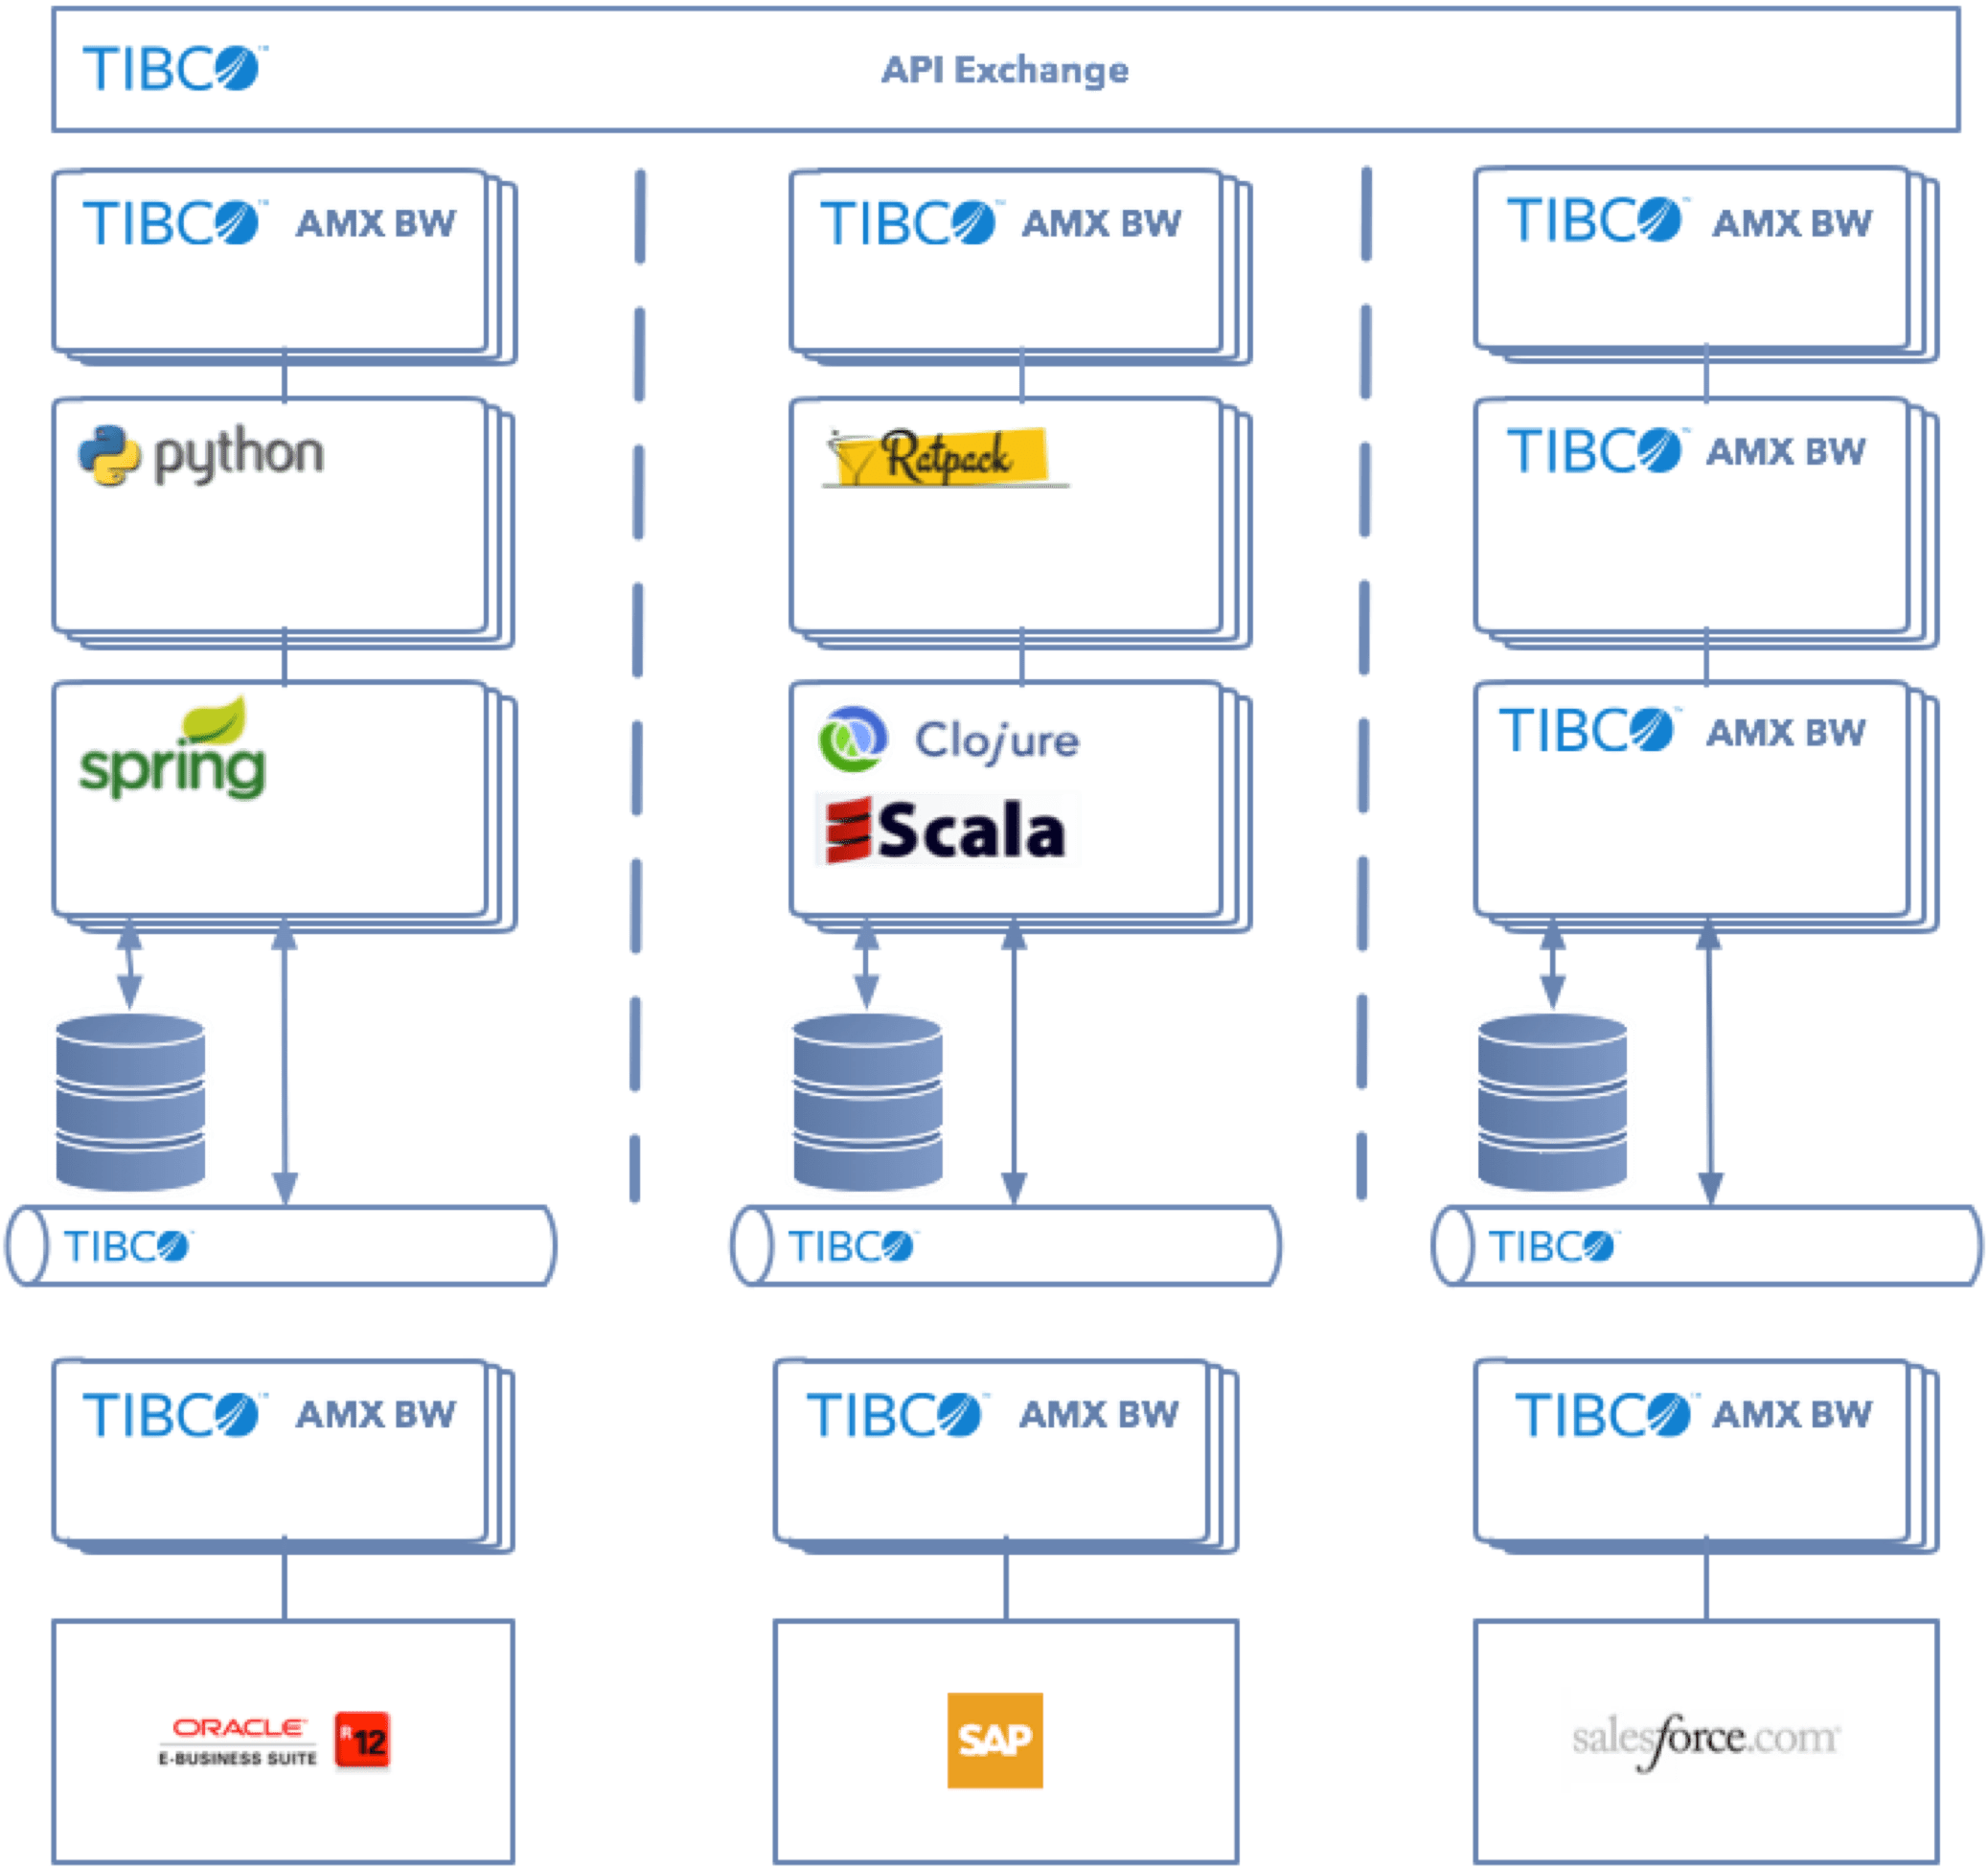 mainframe architecture diagram automotive electrical wiring symbols efcaviation microservices and devops with tibco products dzone